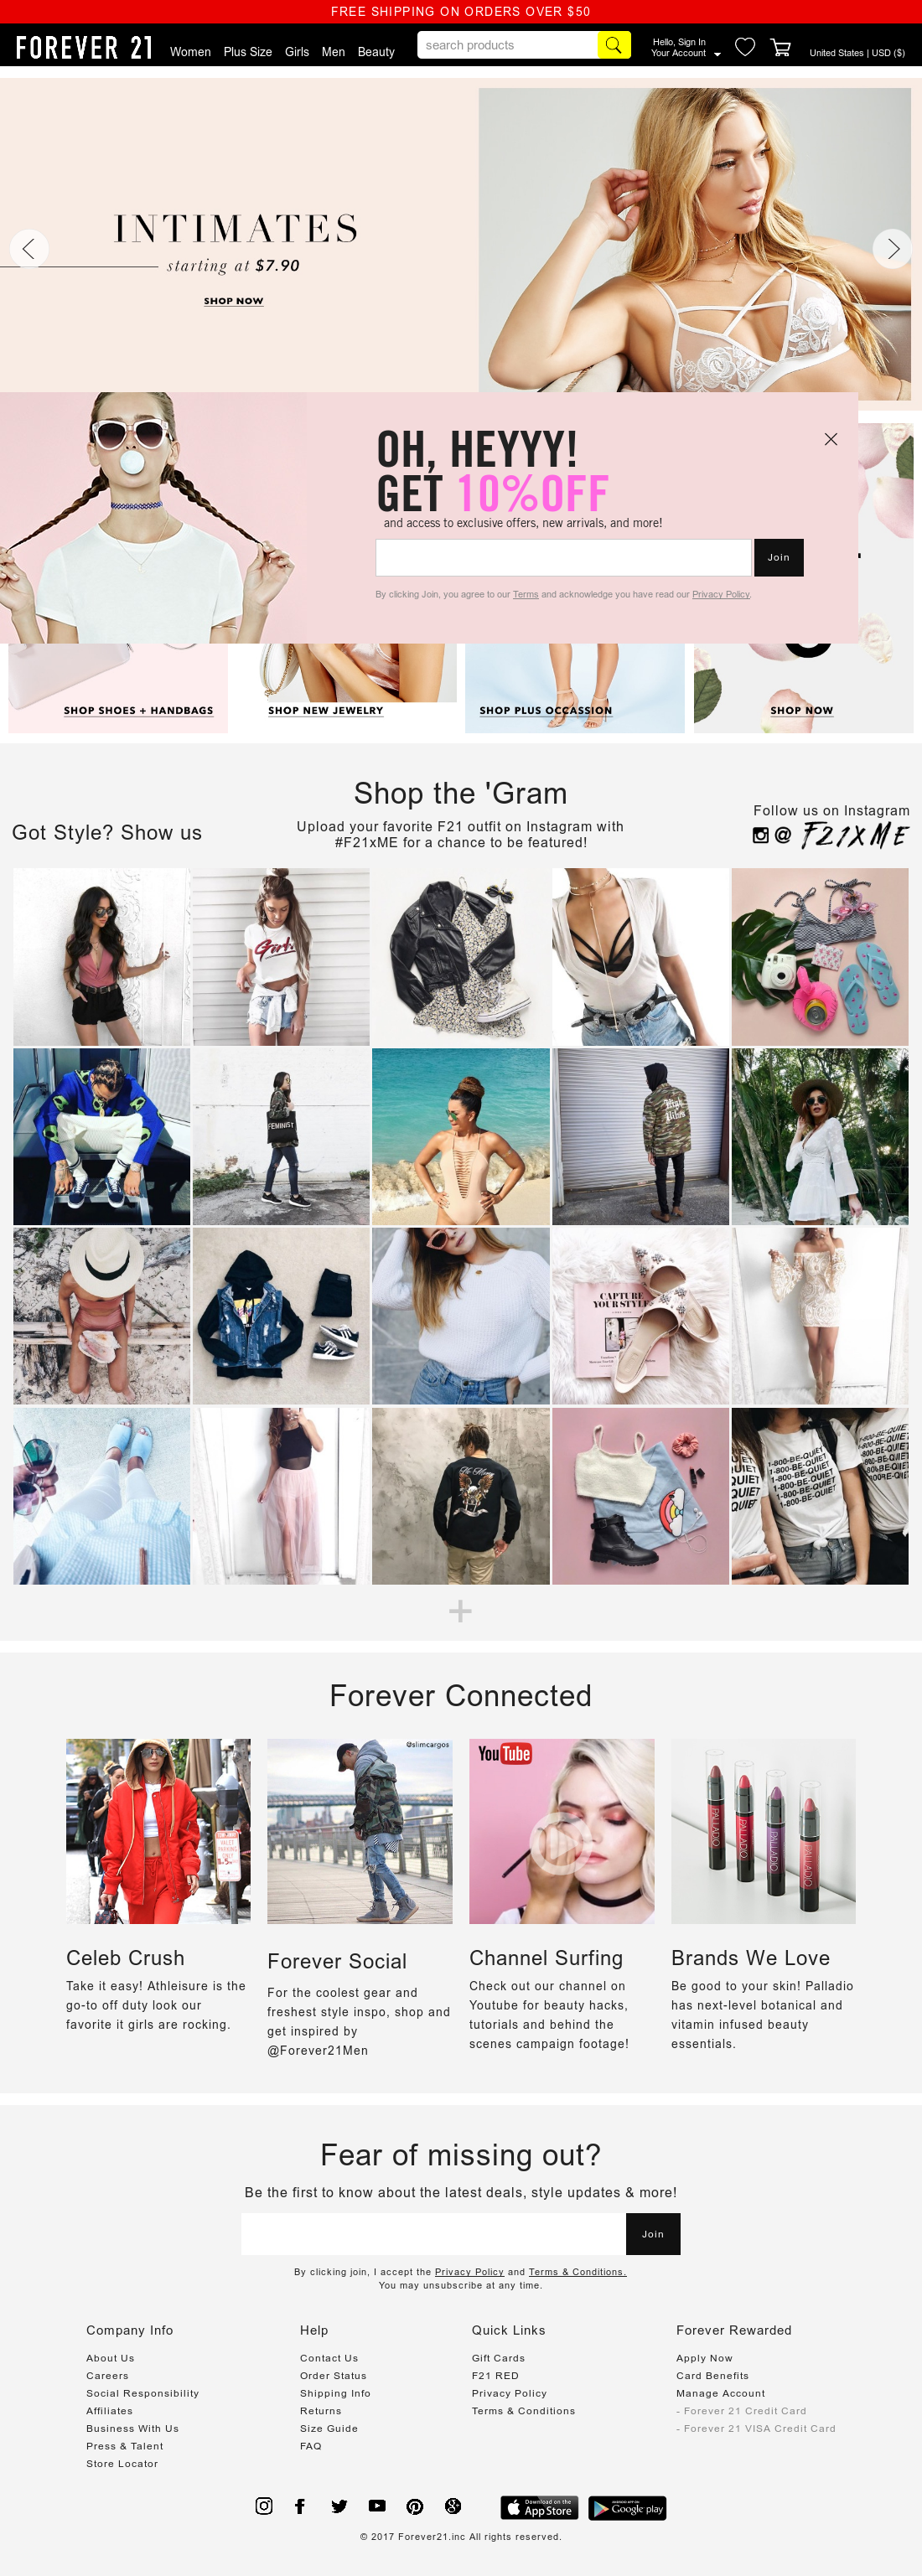 d625b94937518 Forever 21 Competitors, Revenue and Employees - Owler Company Profile